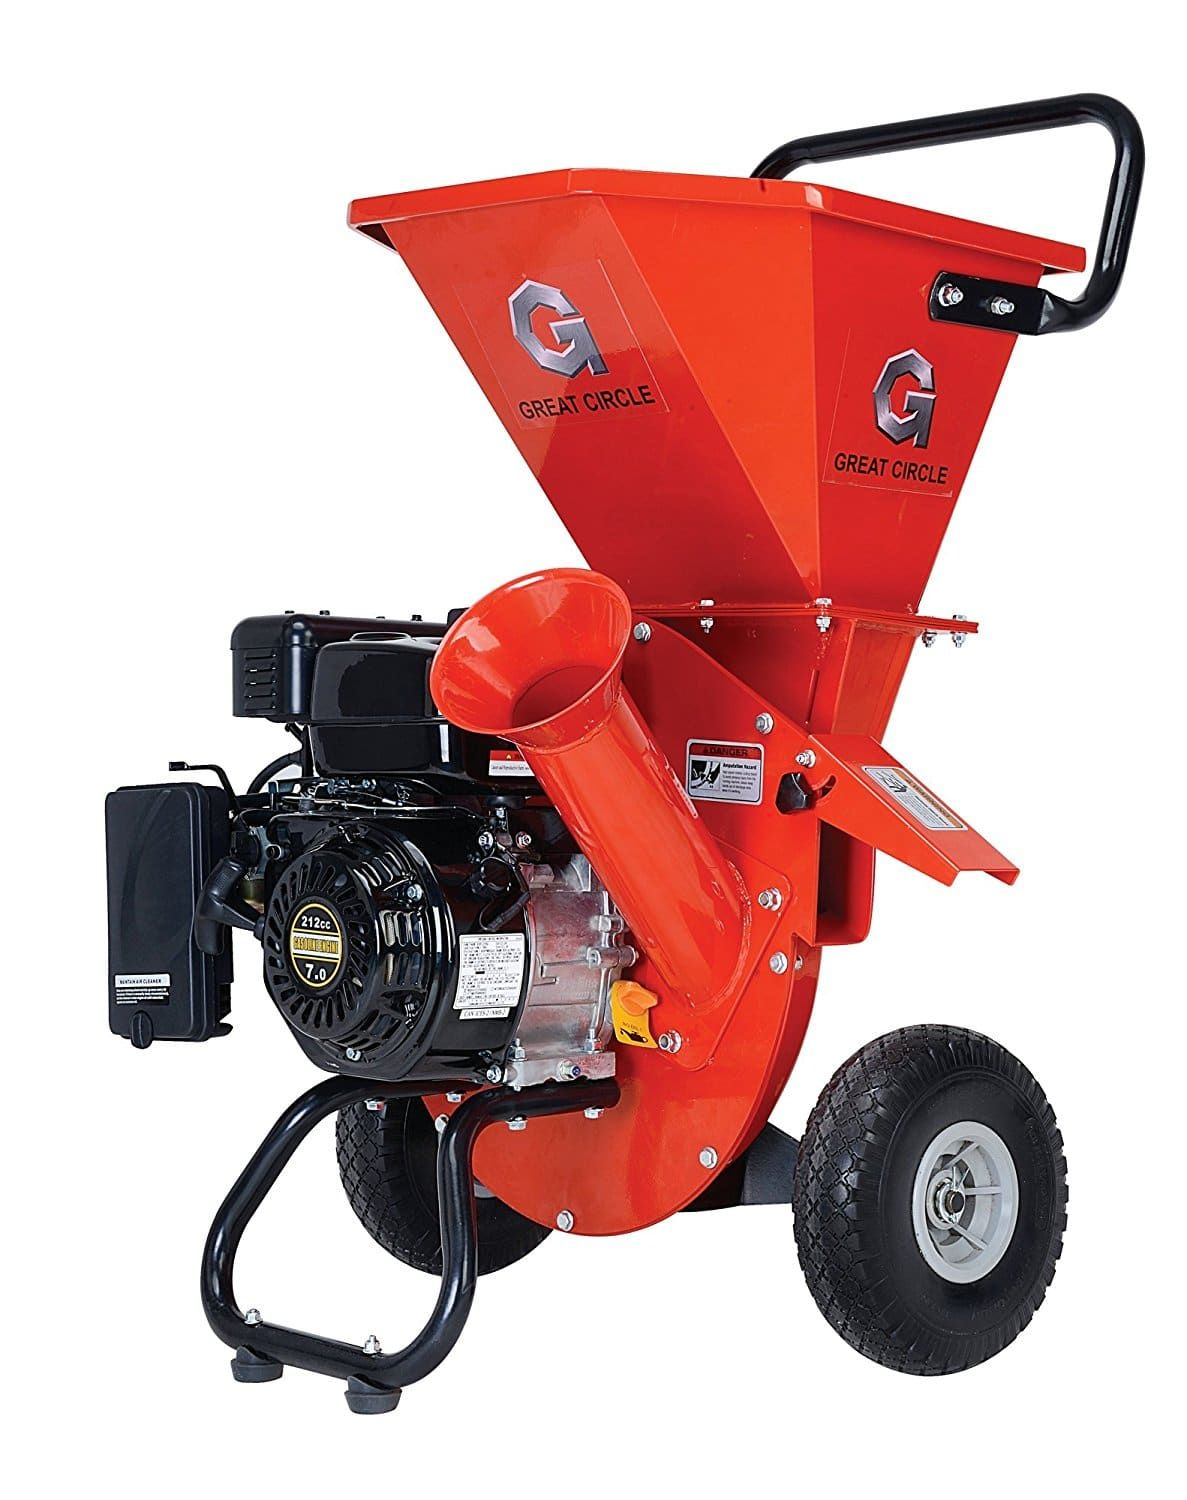 Top 10 Best Wood Chippers in 2019 - Keep Your Garden Clean